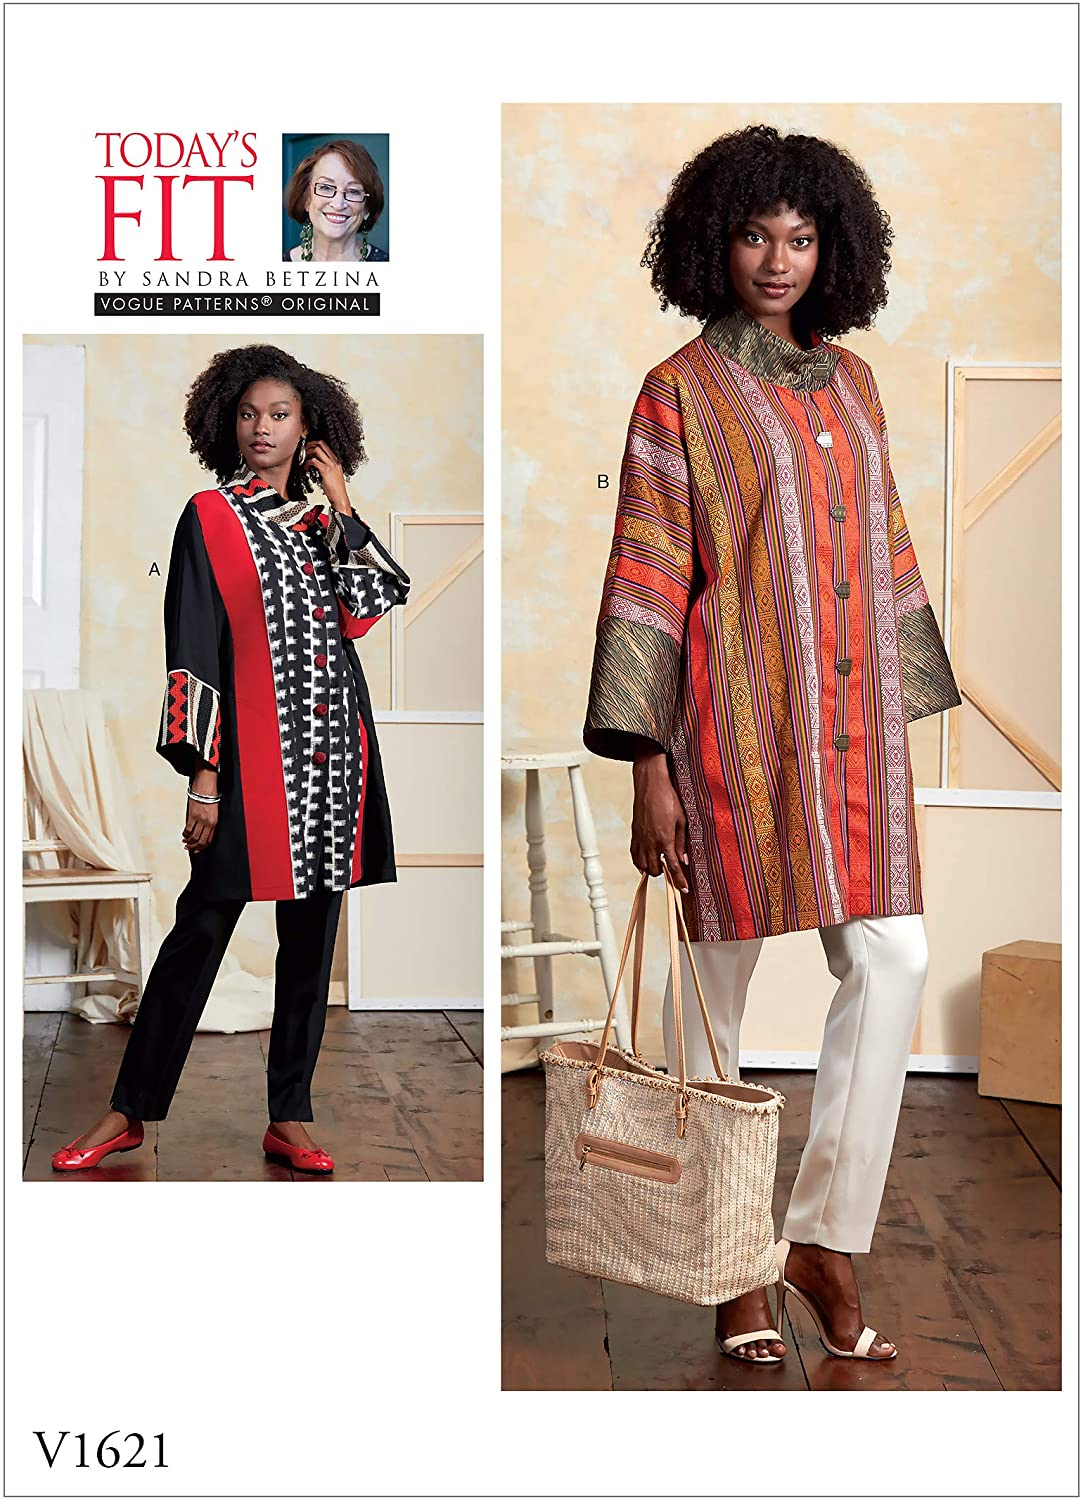 Vogue V1621A Women's Loose Coat Sewing Pattern from Today's Fit by Sandra Betzina, All Sizes